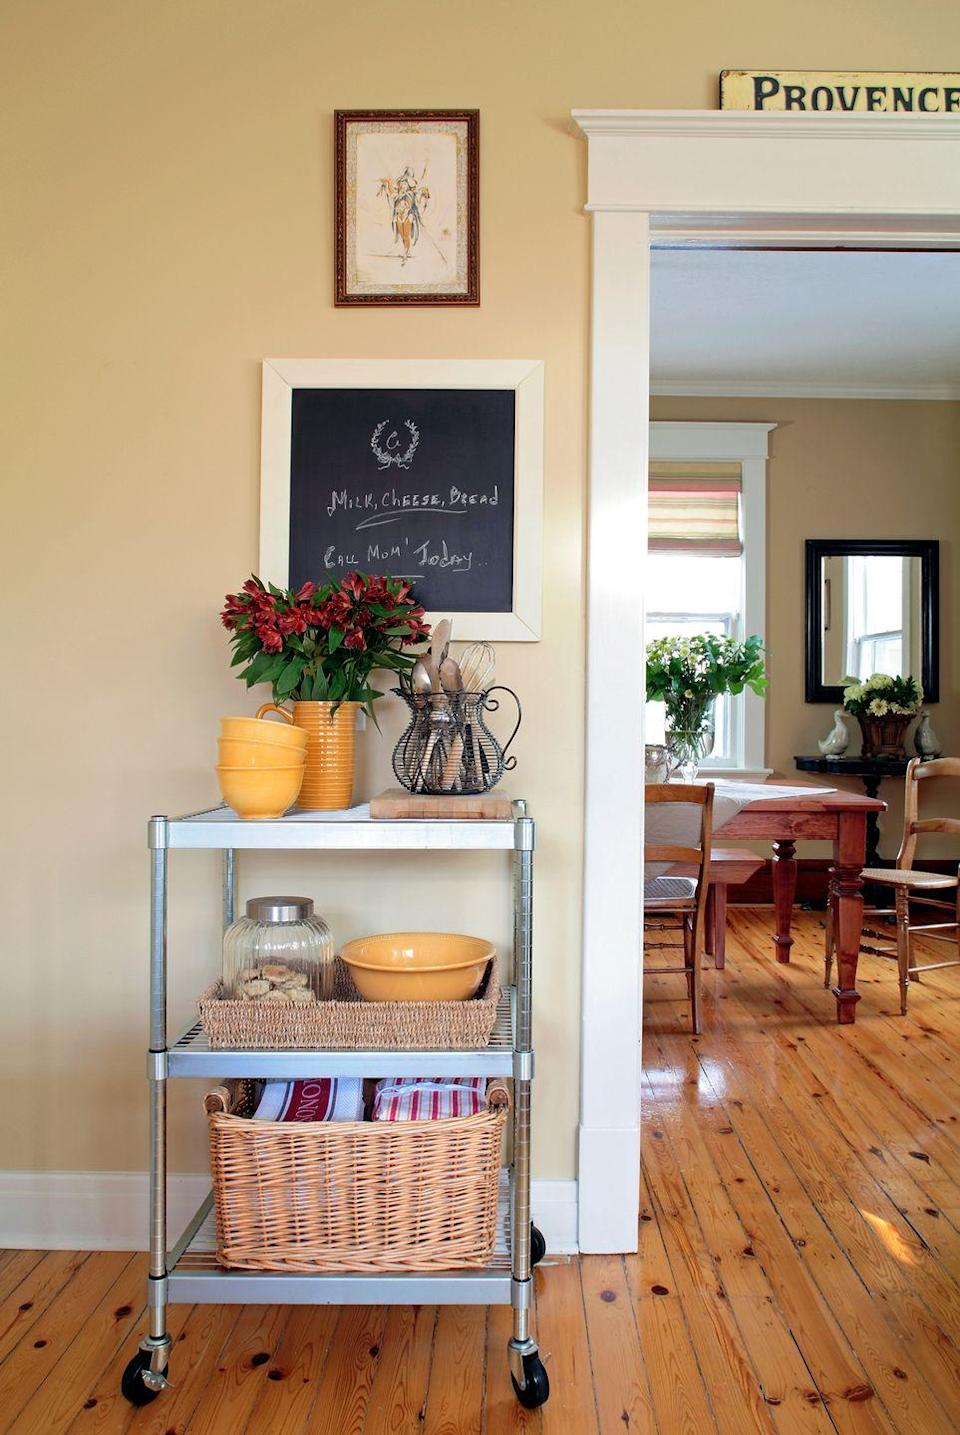 <p>All out of kitchen storage? Make use of your bar cart's shelving to store kitchen towels, bowls, utensils, and more. </p>